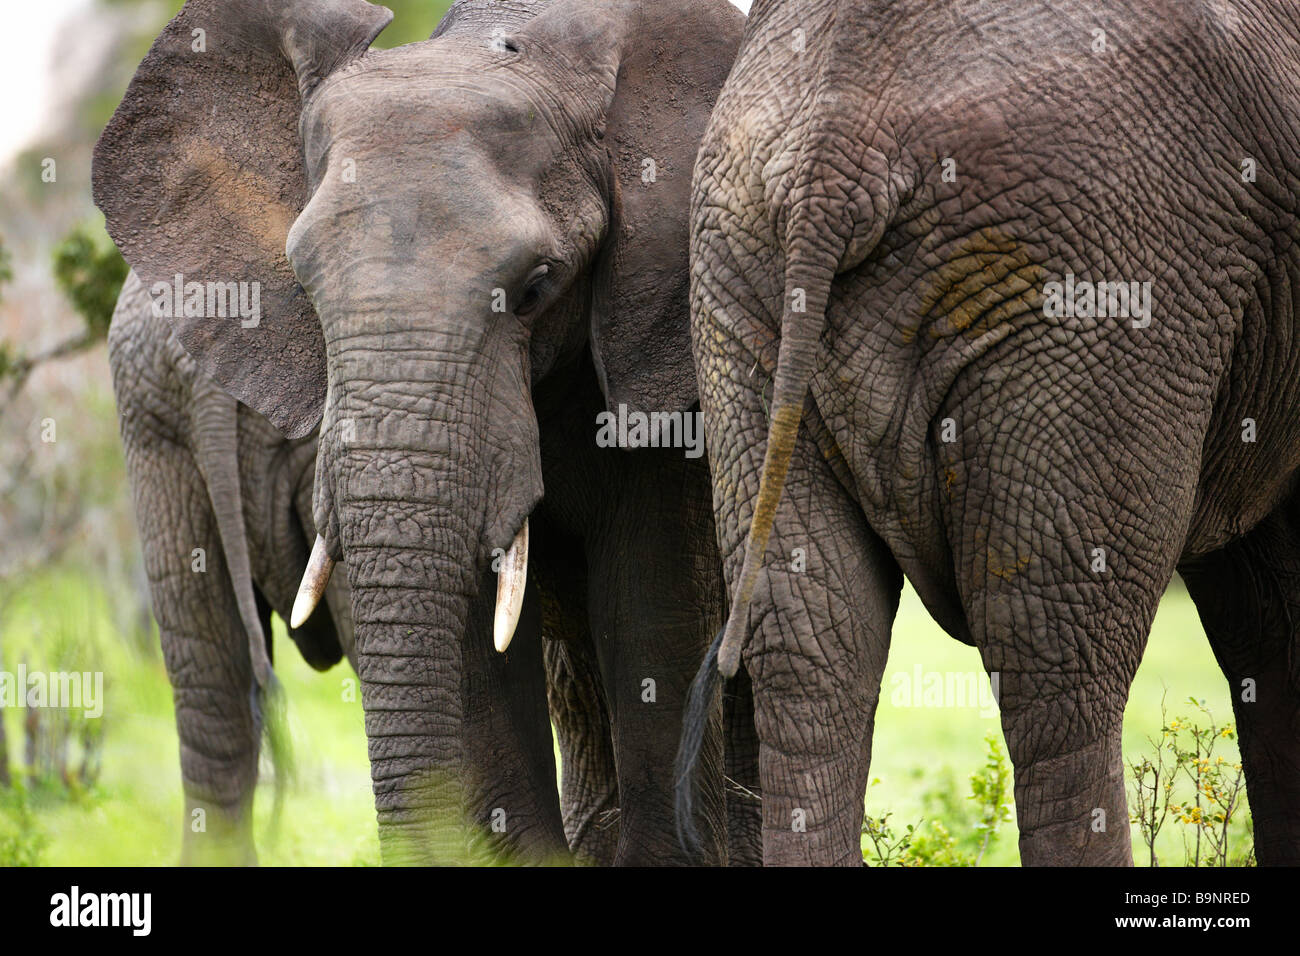 frontal and rear view of African elephants in the bush, Kruger National Park, South Africa - Stock Image